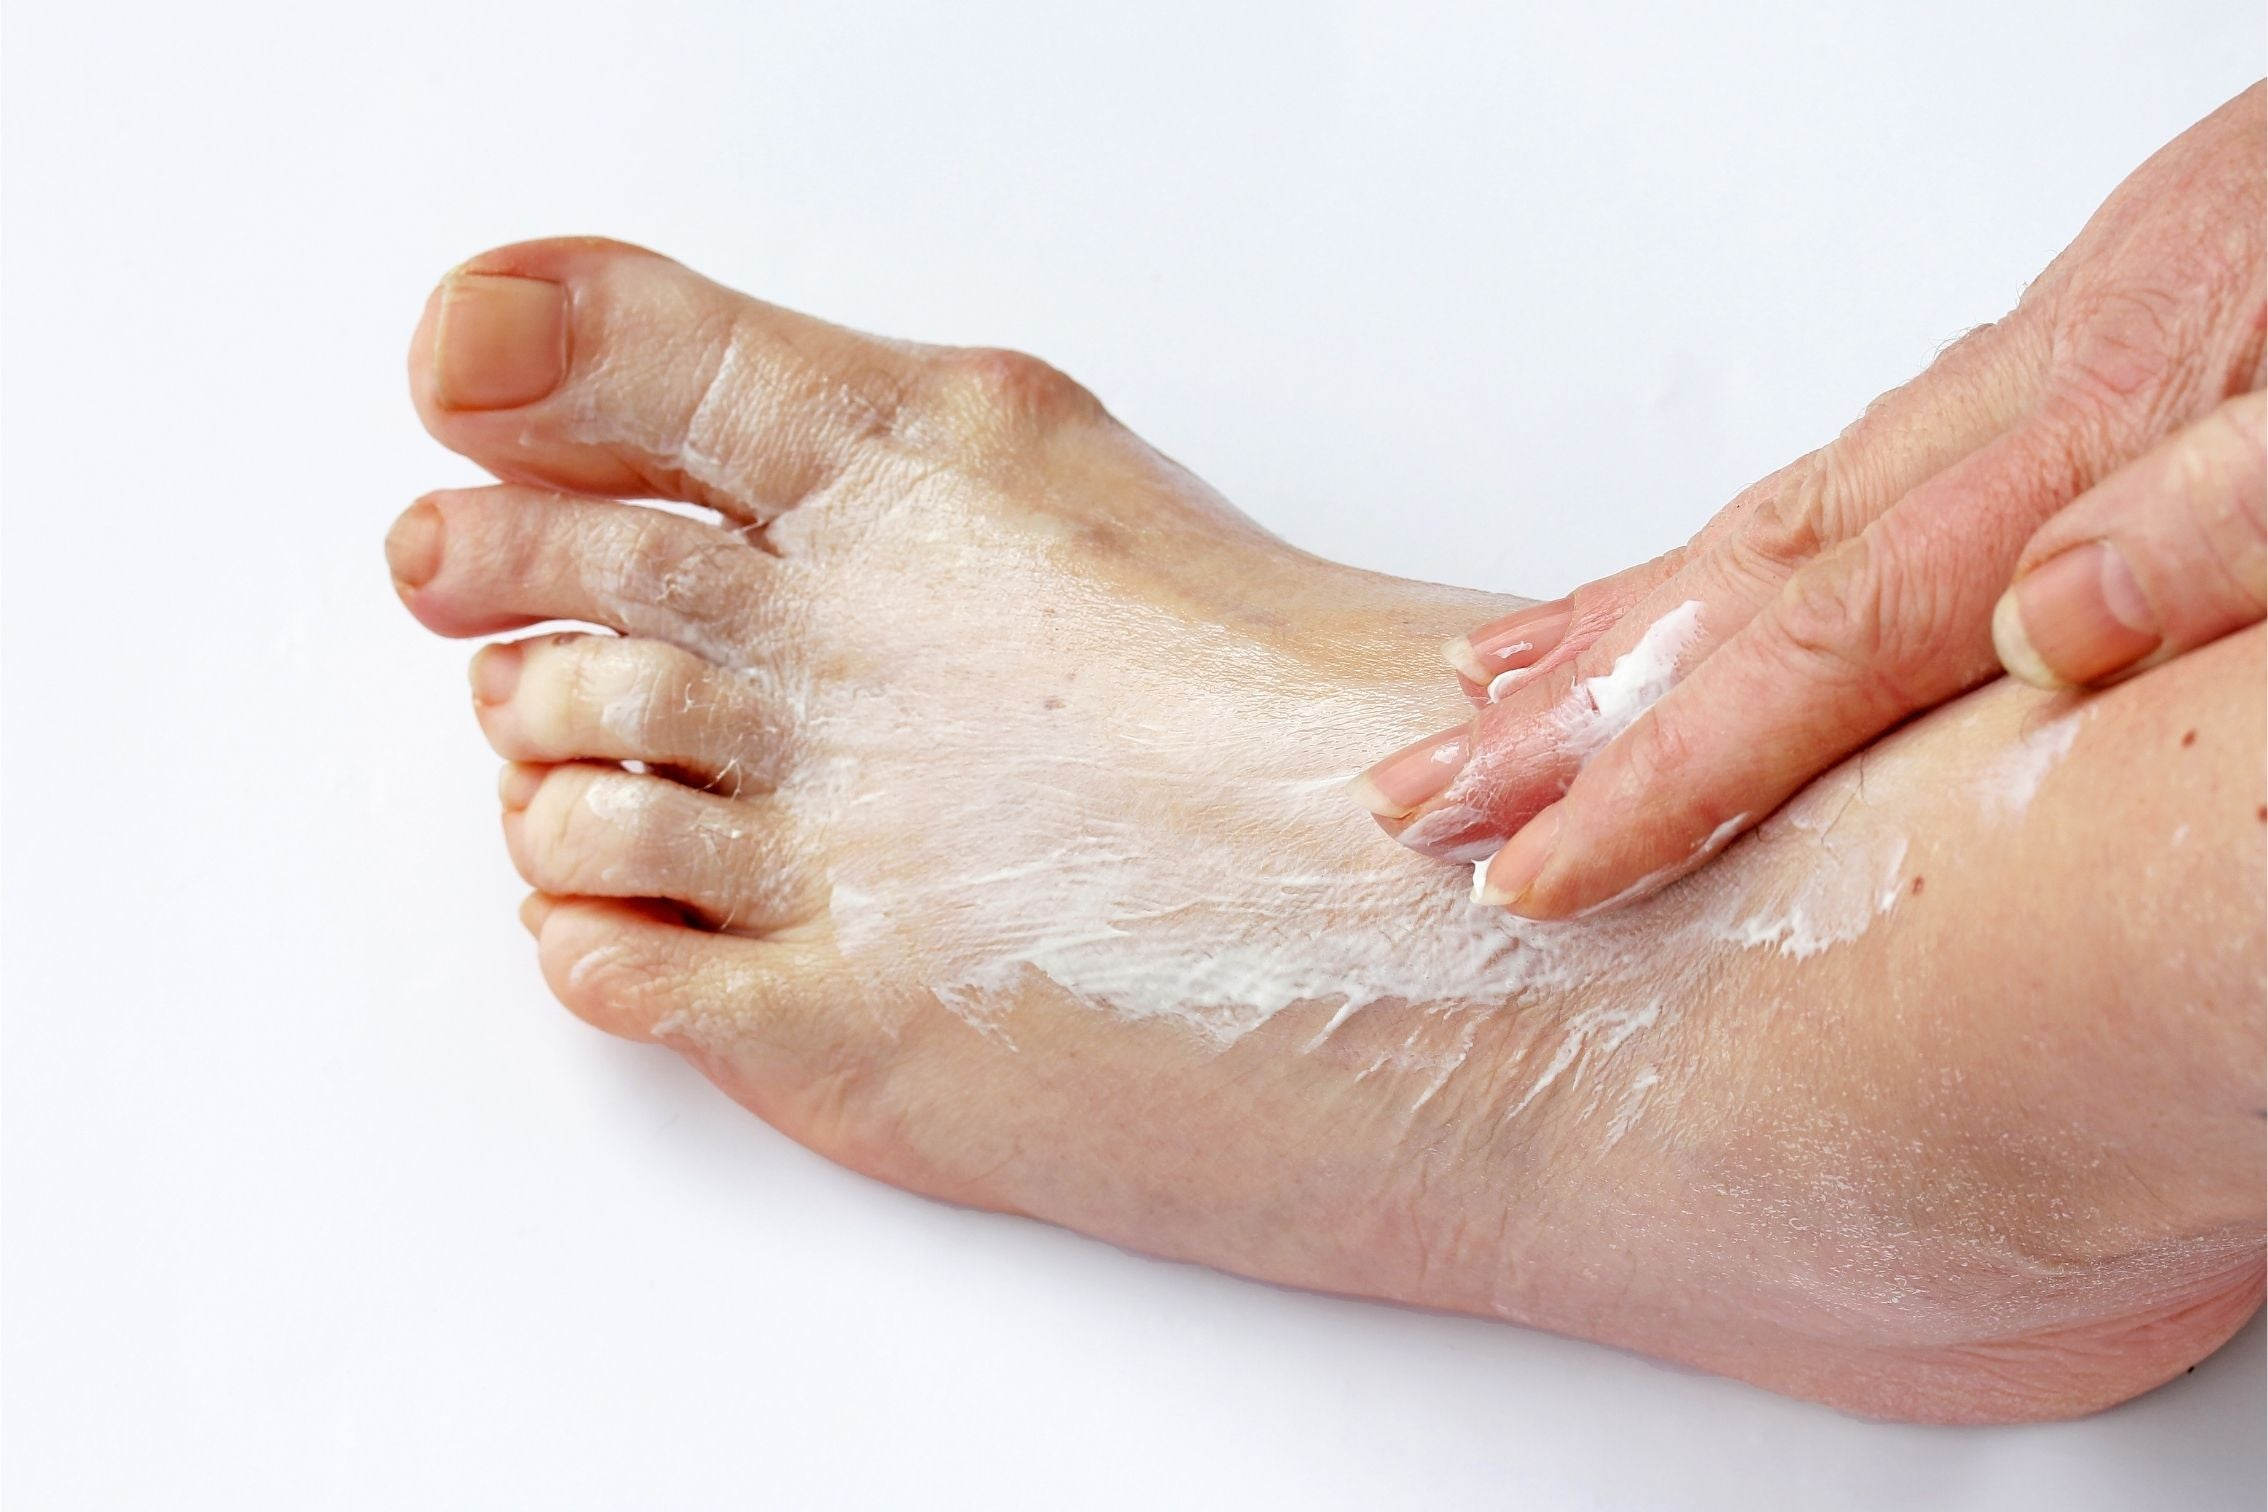 foot cream being applied